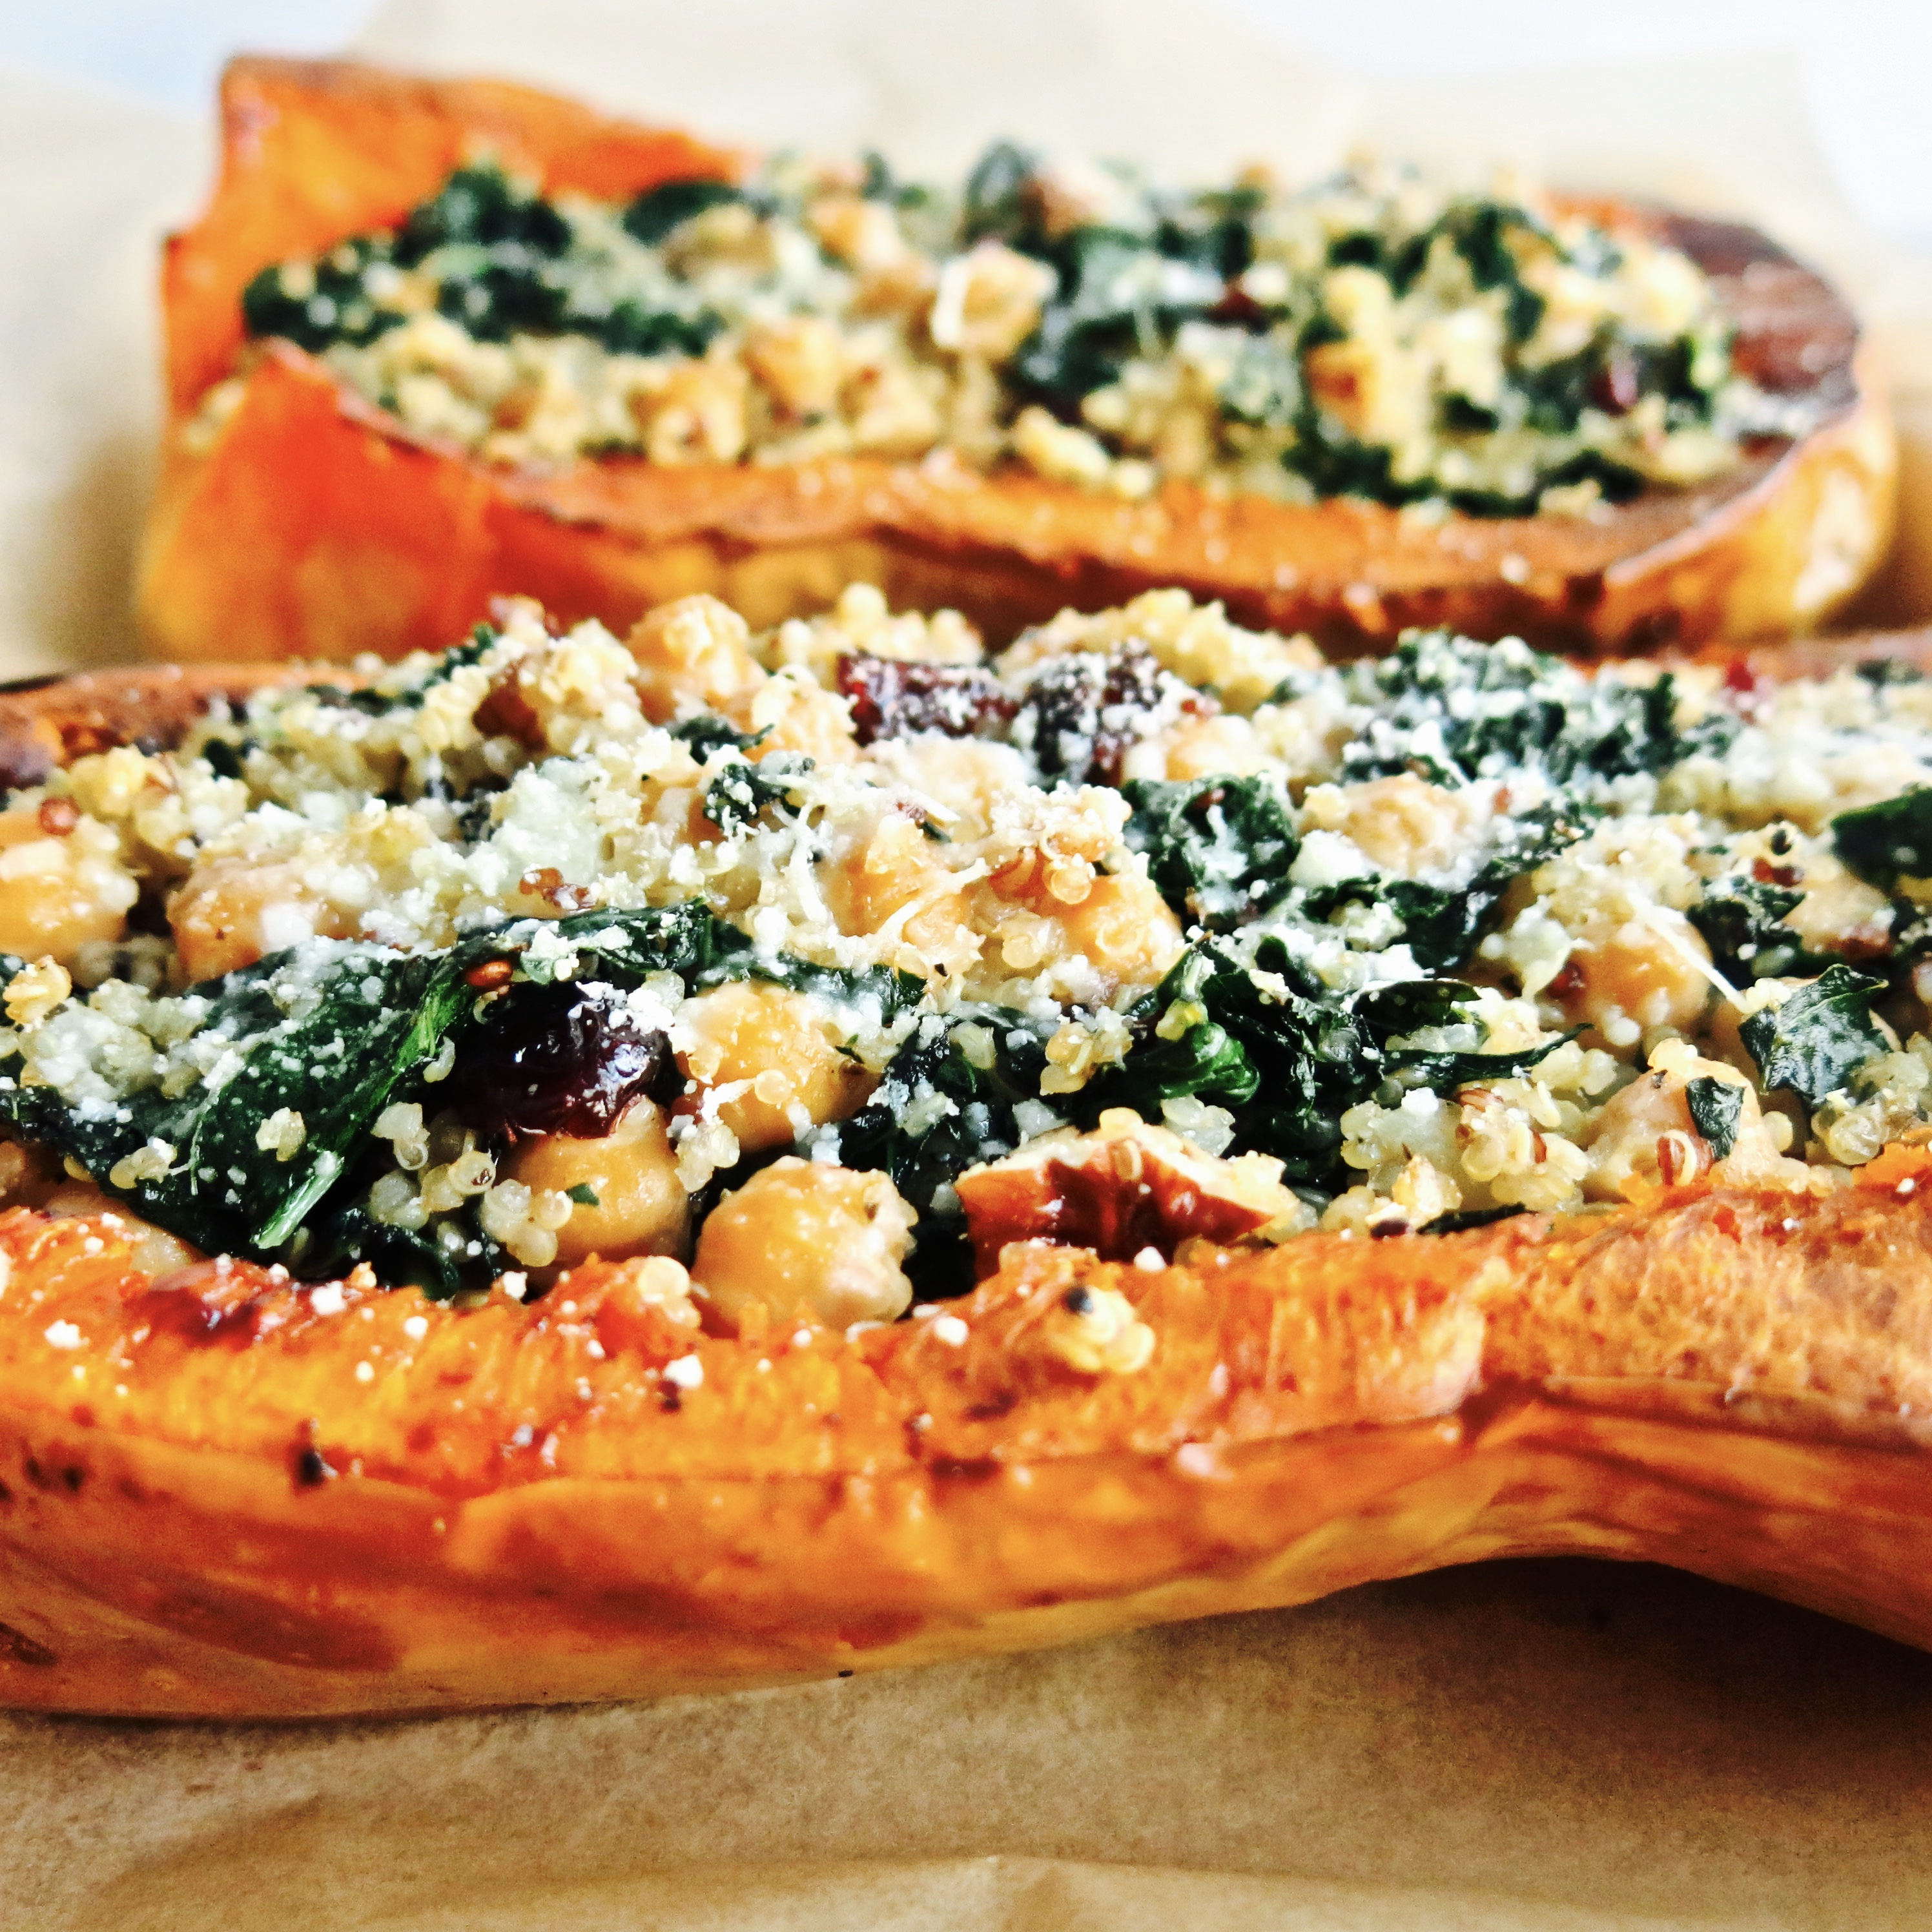 Roasted and Stuffed Butternut Squash with Quinoa, Kale and Chickpeas!